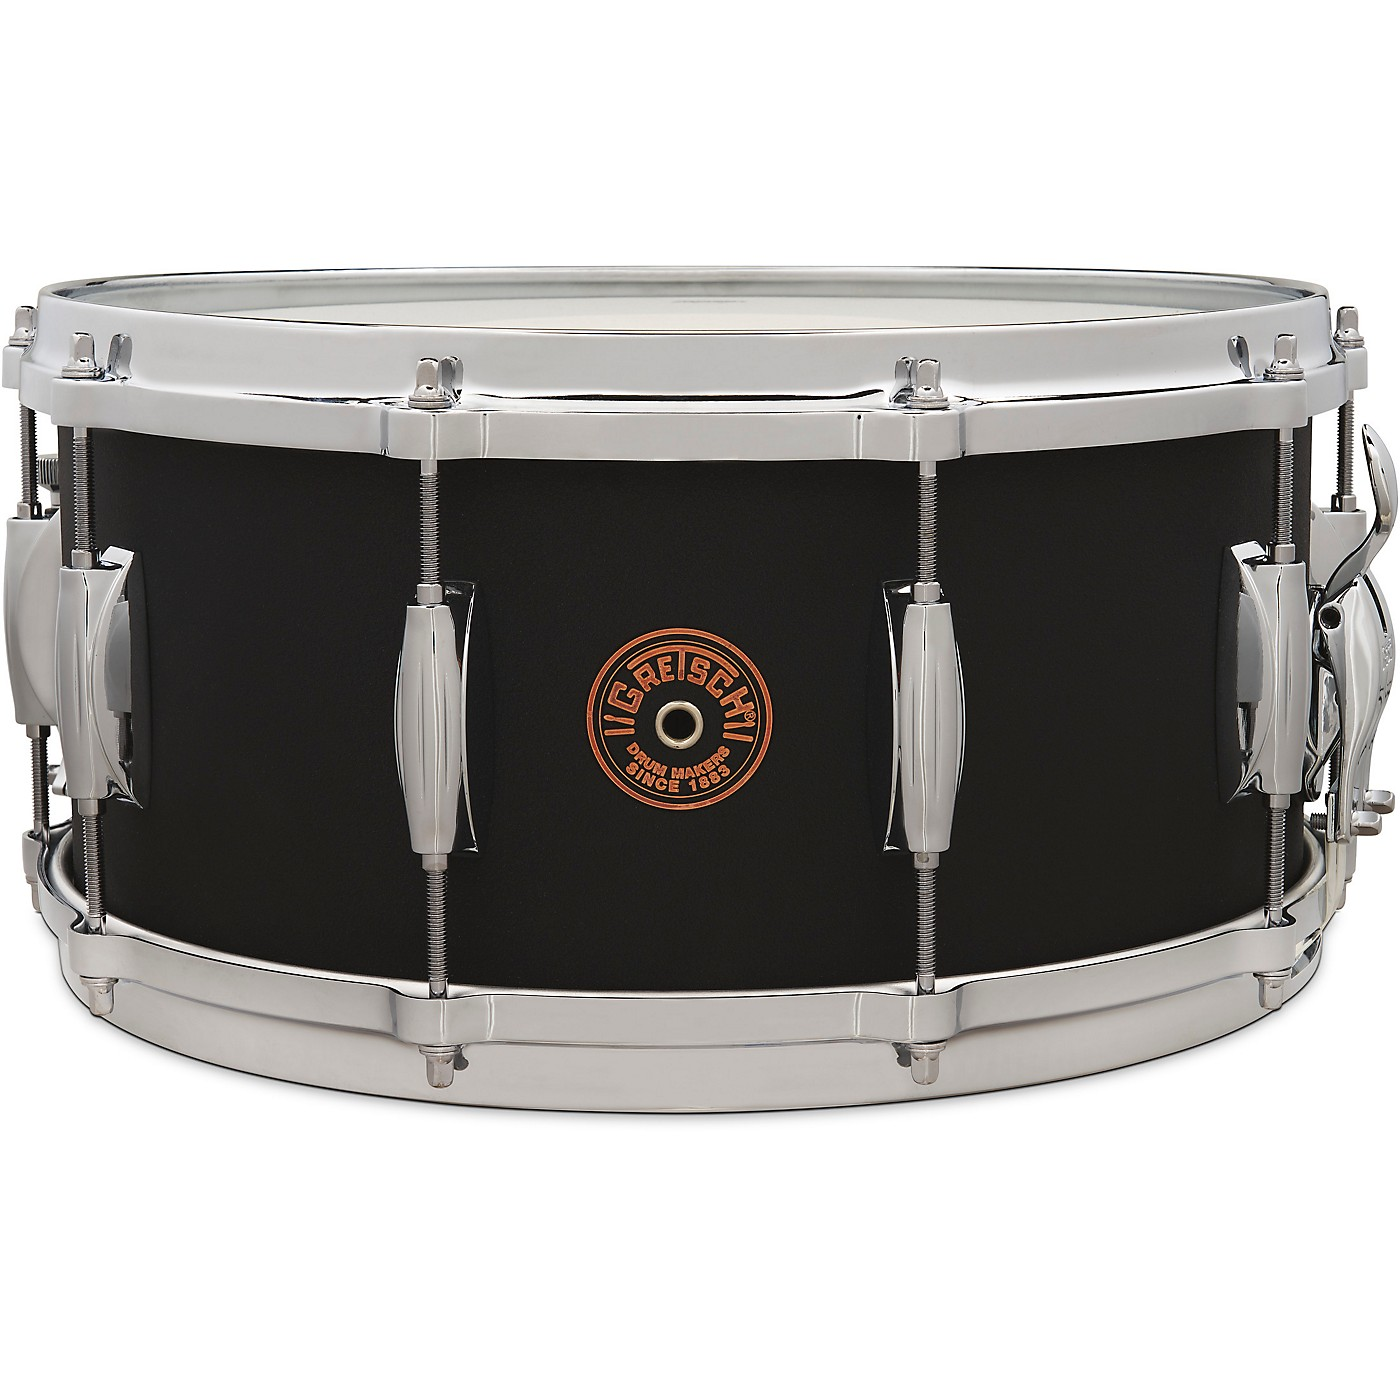 Gretsch Drums USA Custom Black Copper Snare Drum thumbnail